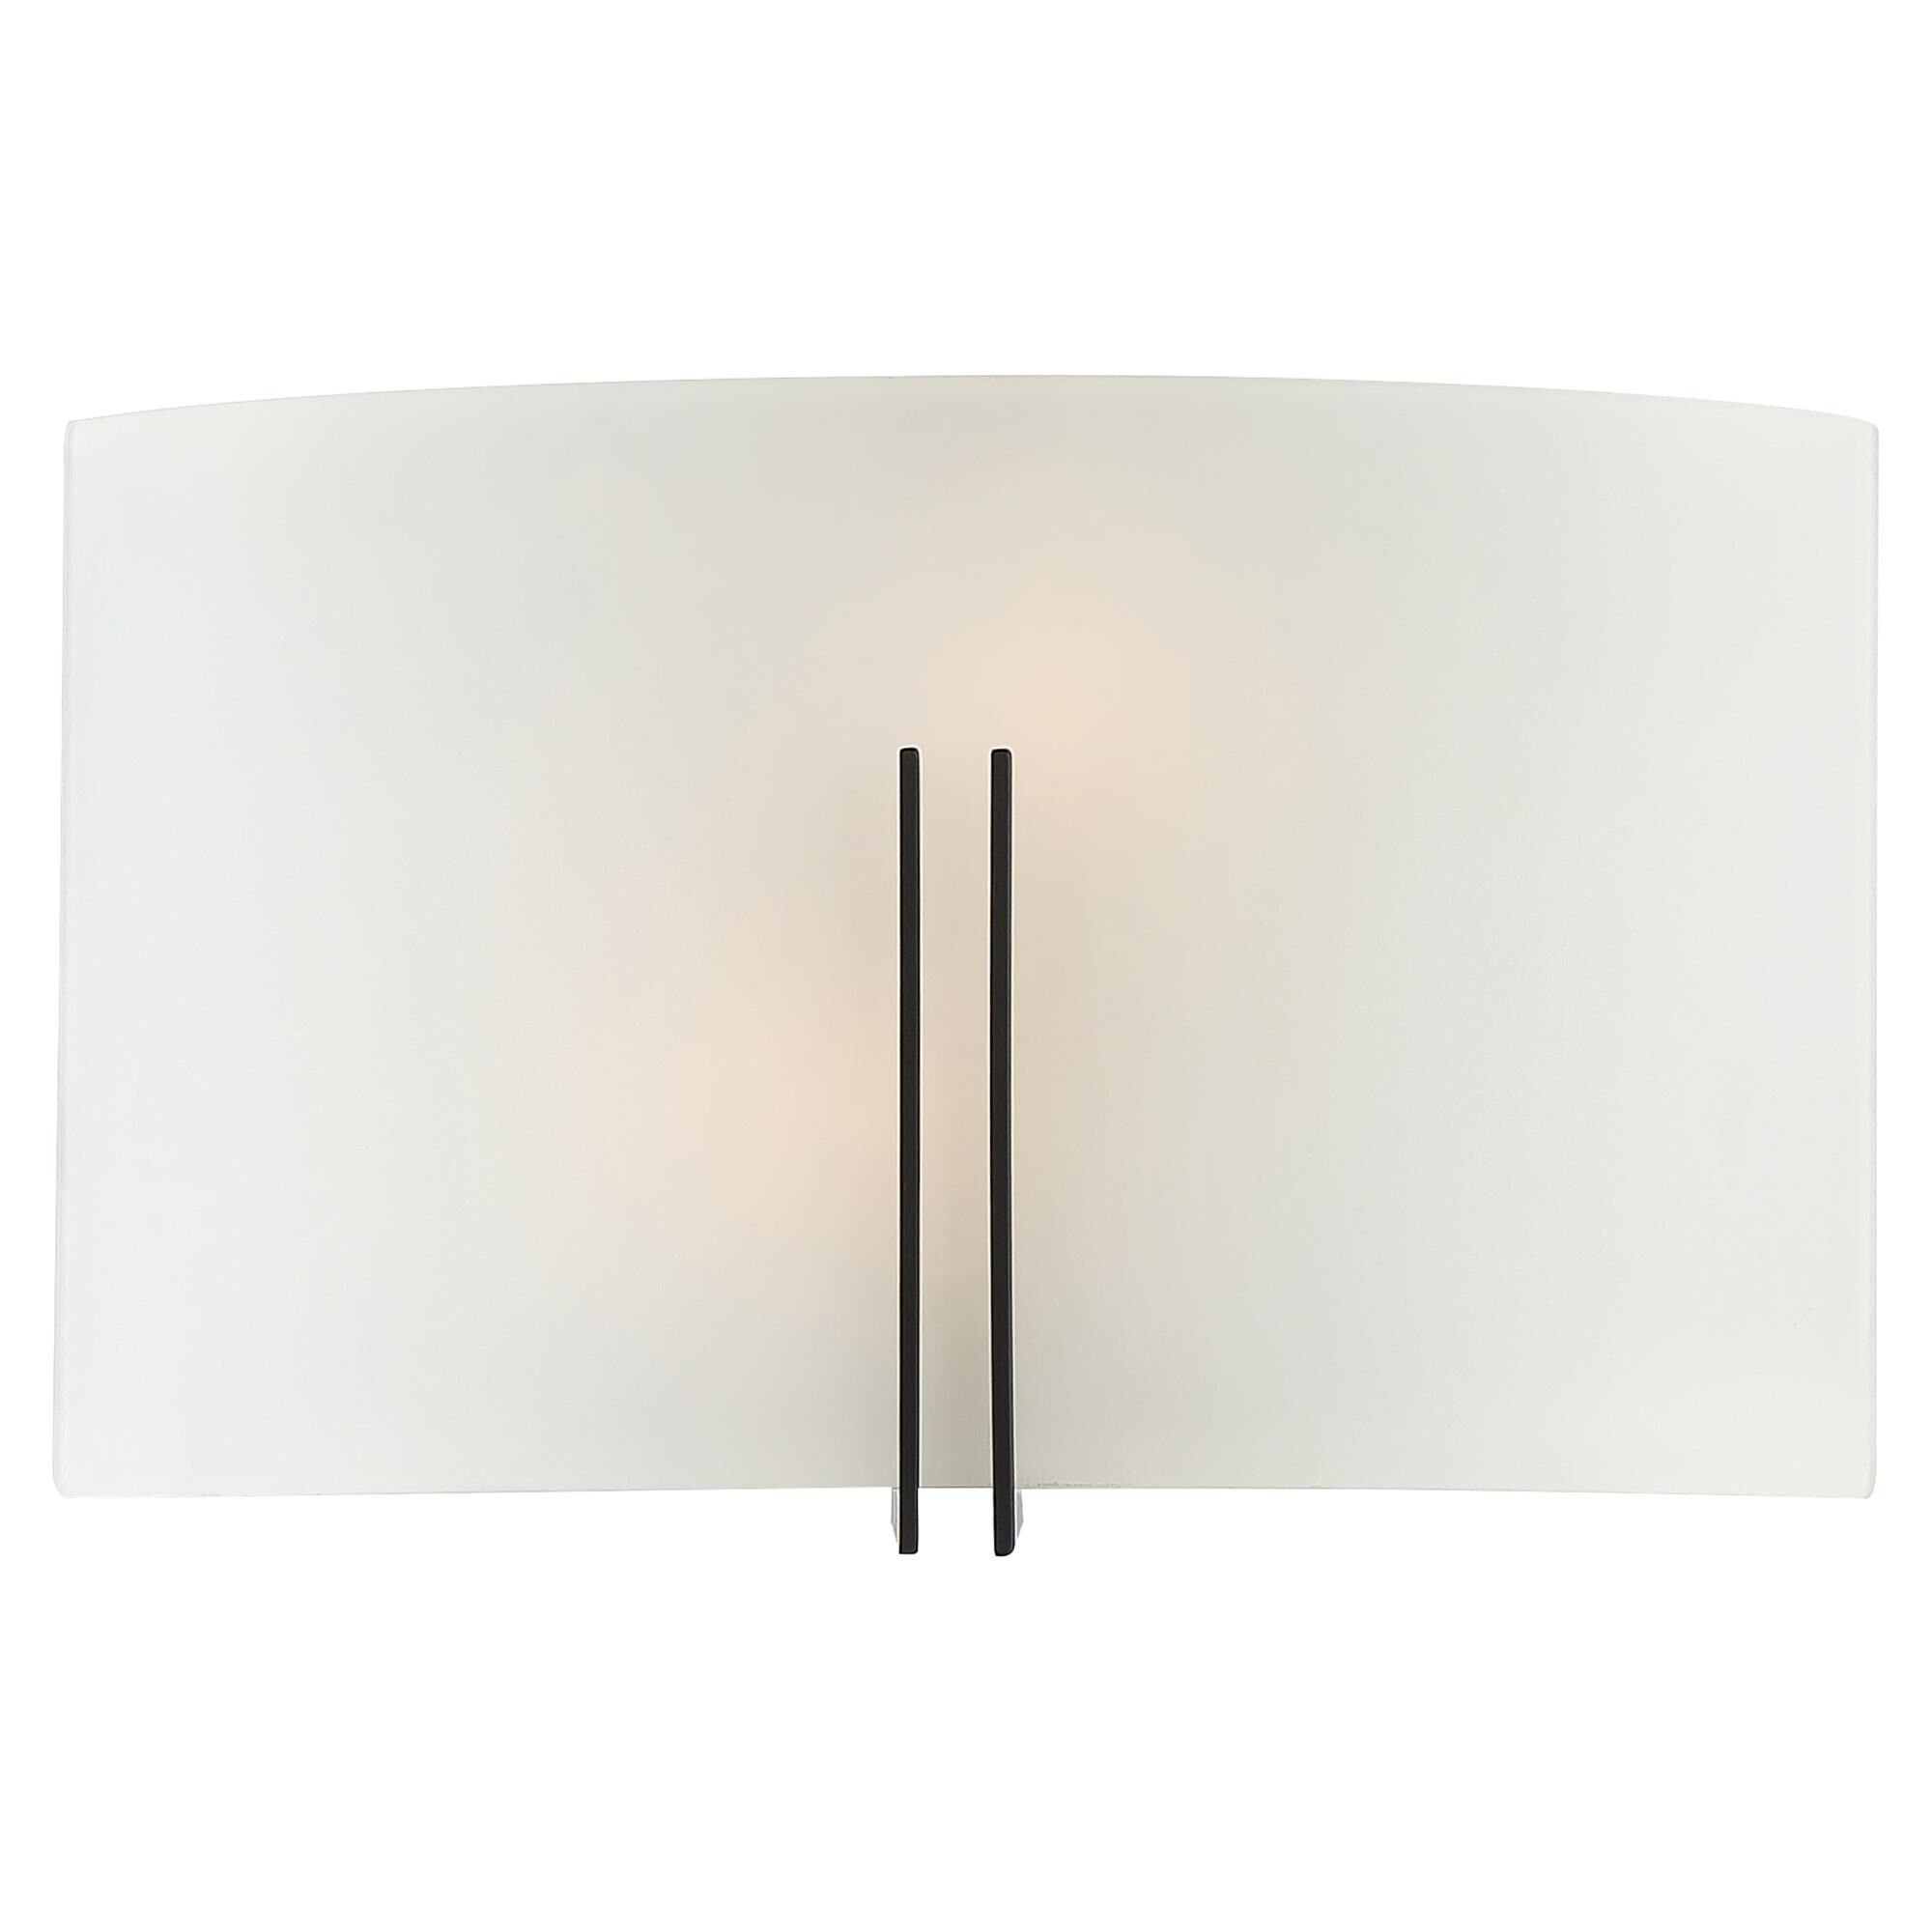 Access Lighting Prong 12 Inch LED Wall Sconce Prong 20447LEDDLP MBLWH Transitional